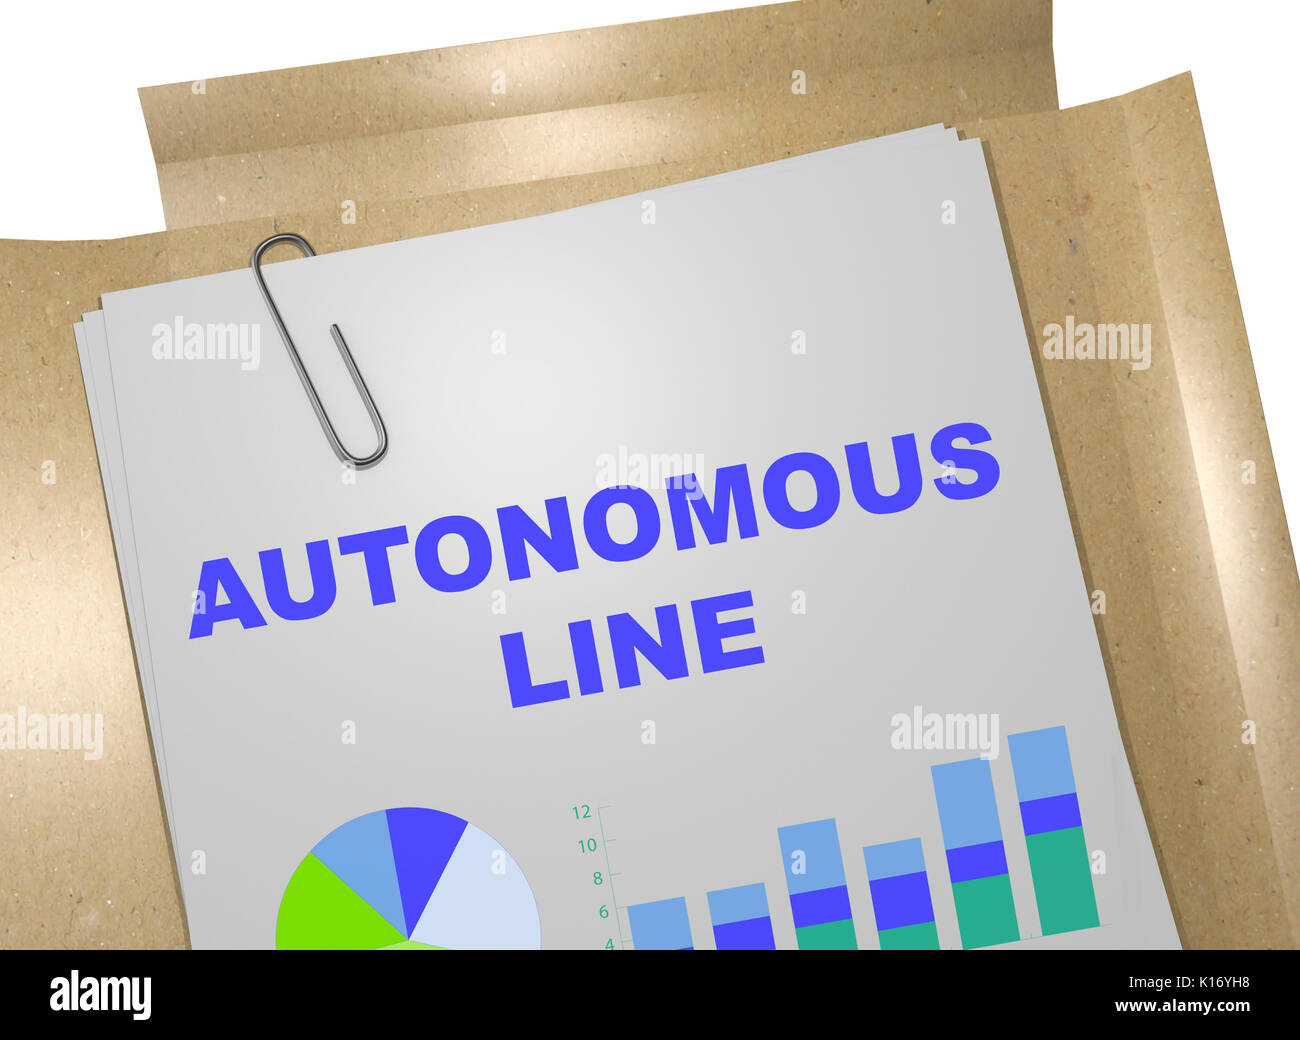 3D illustration of 'AUTONOMOUS LINE' title on business document - Stock Image